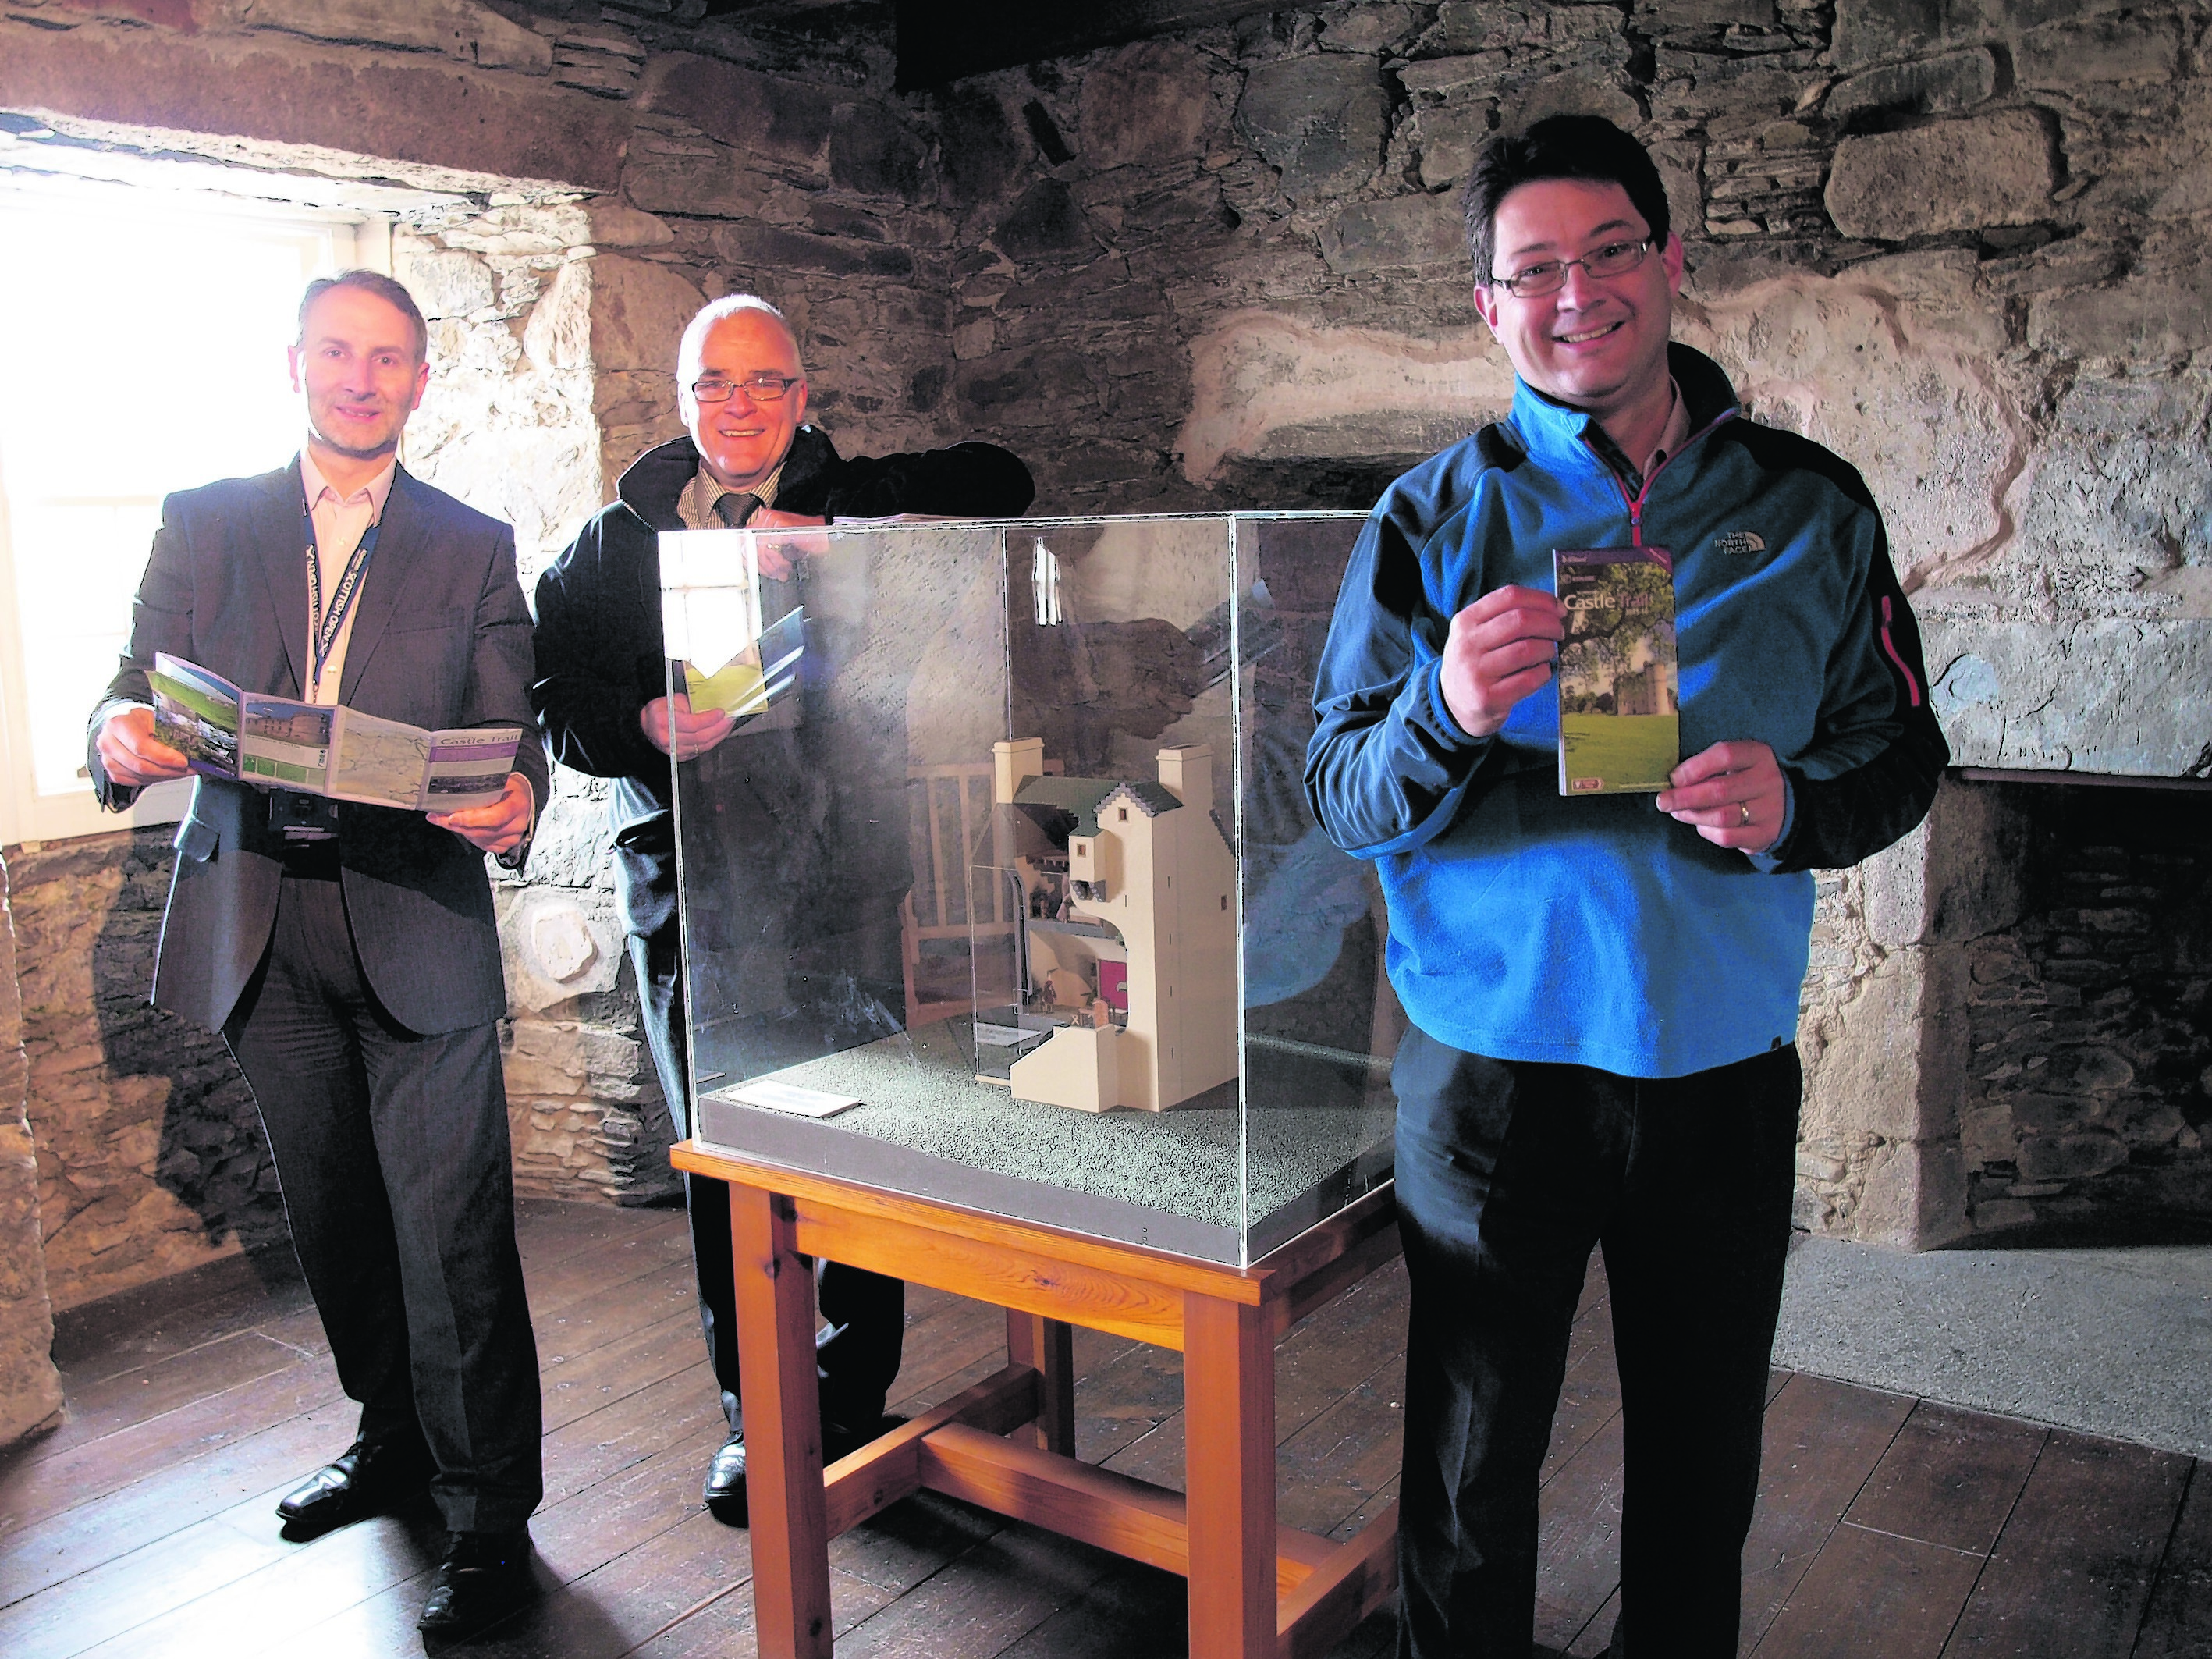 From left: David Wright, VisitScotland, George Wilson, Historic Scotland, and Philip Smith, VisitScotland,  show off the new guides at Corgarff Castle